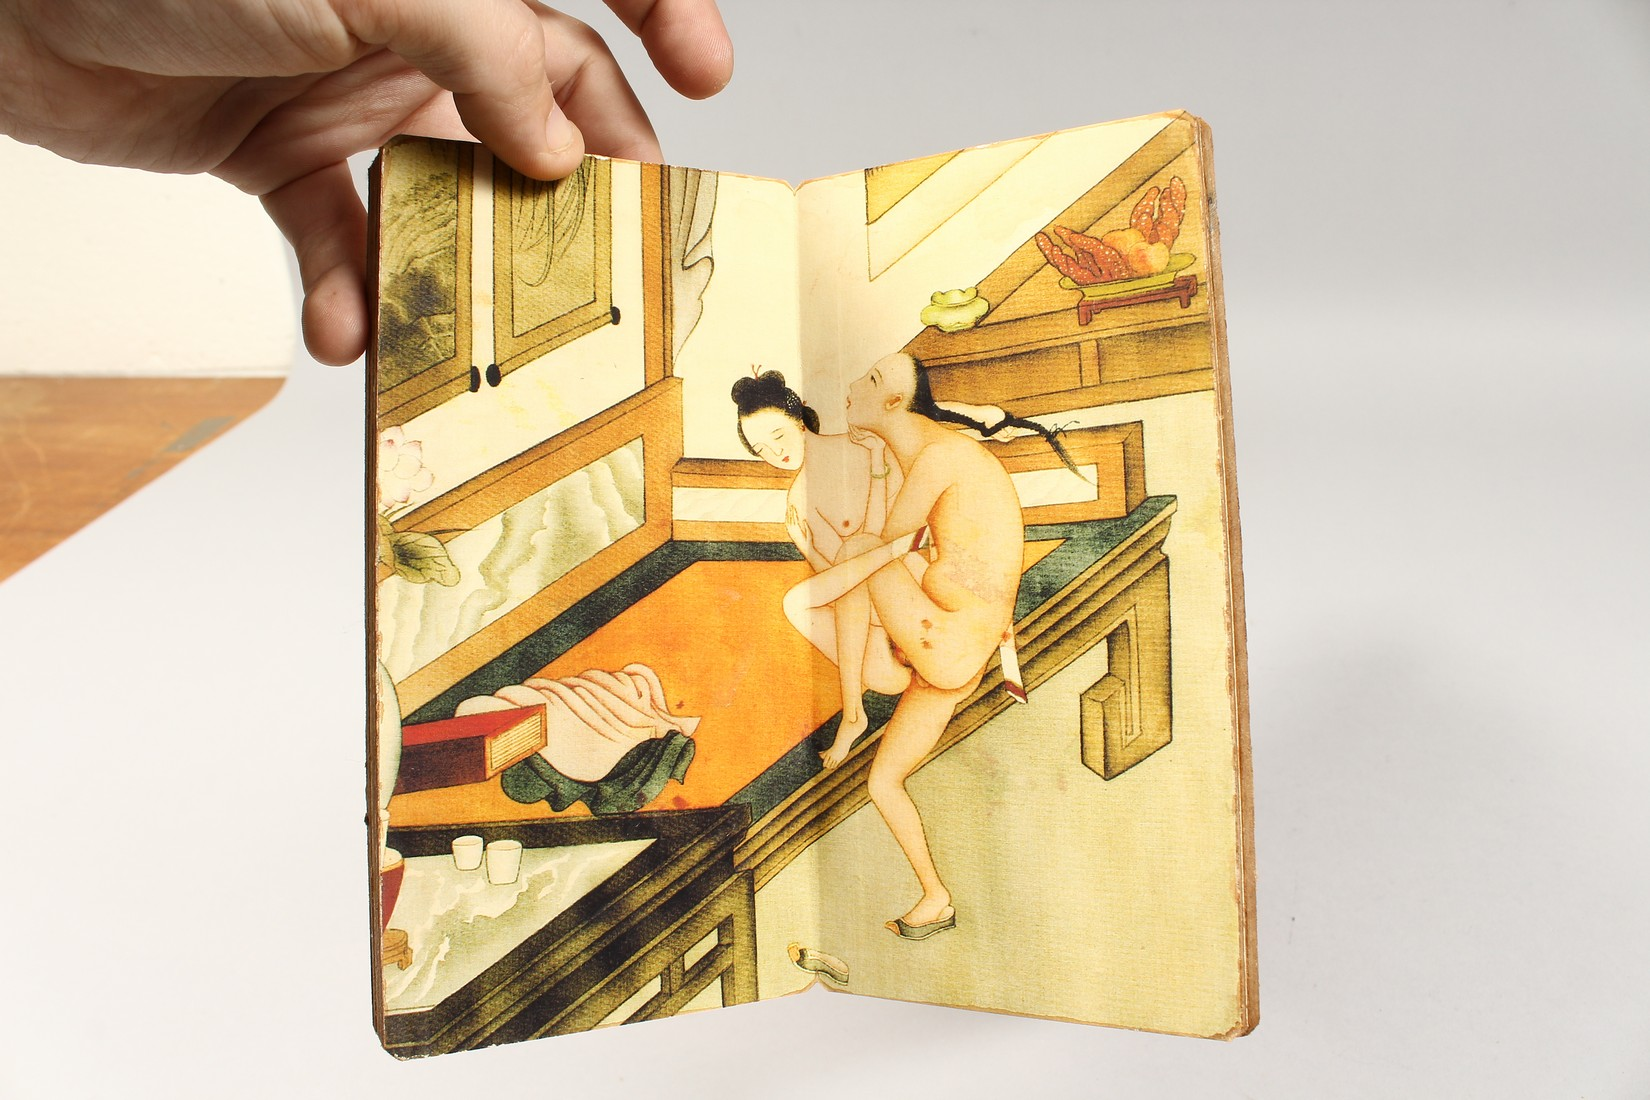 AN EROTIC CHINESE FOLDING BOOK. - Image 5 of 9